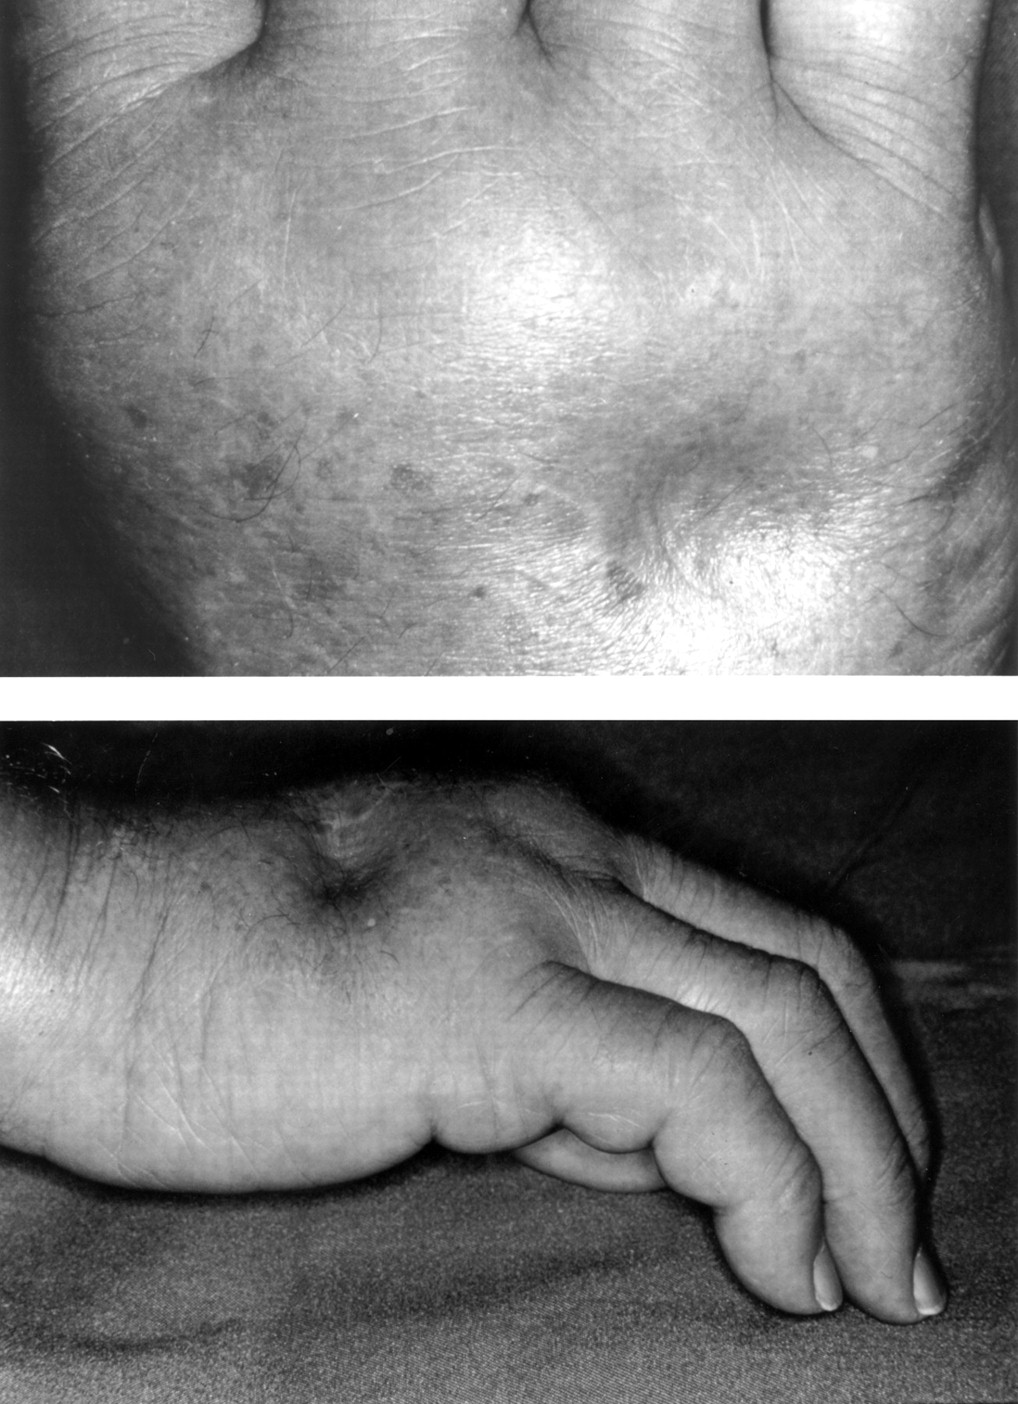 Polyarthritis and pitting oedema | Annals of the Rheumatic